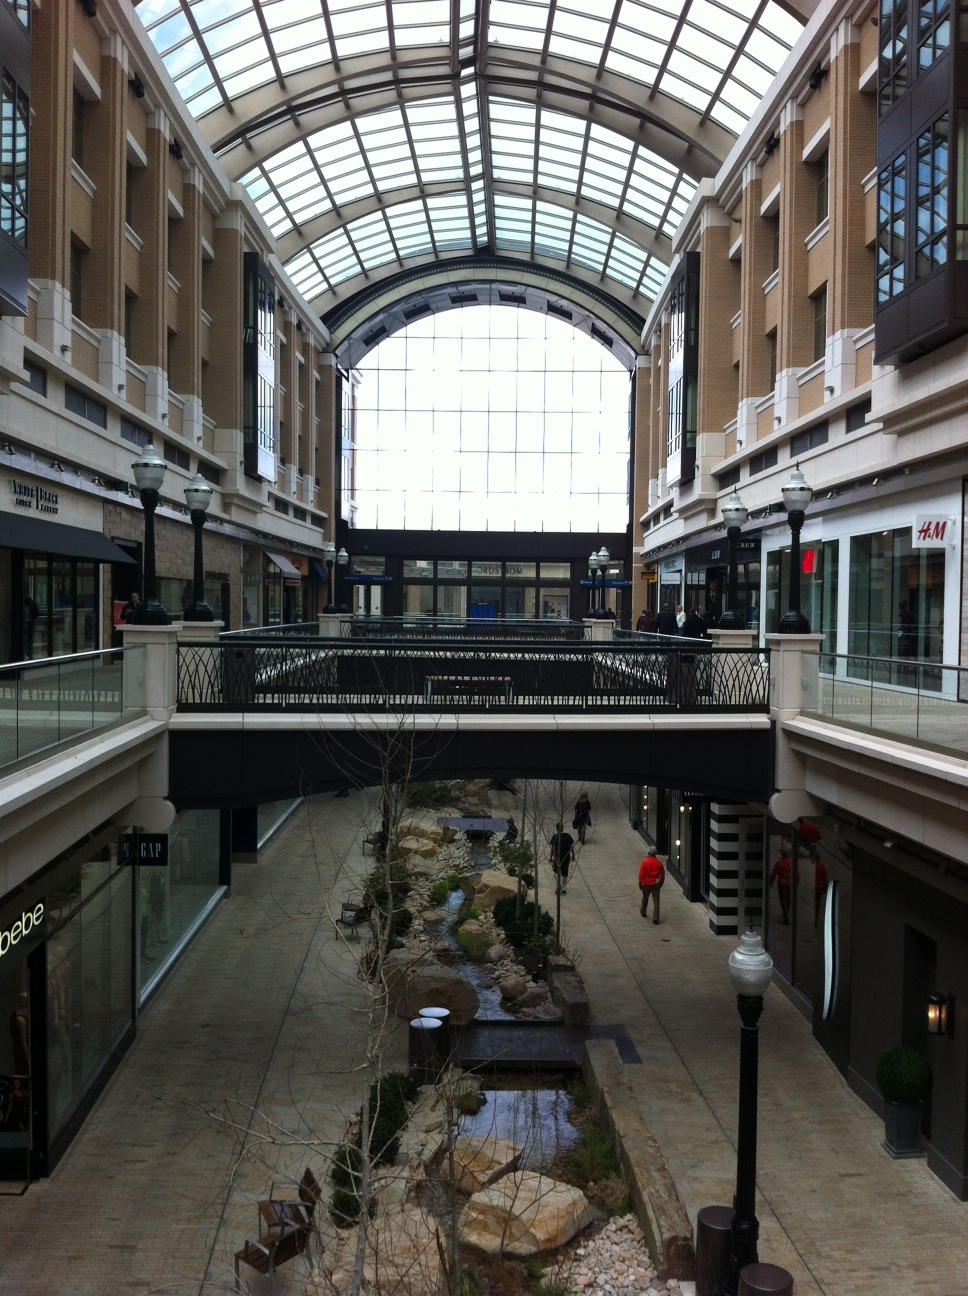 SLC's City Creek shopping centre does indeed have a creek running through it that meanders back outside.